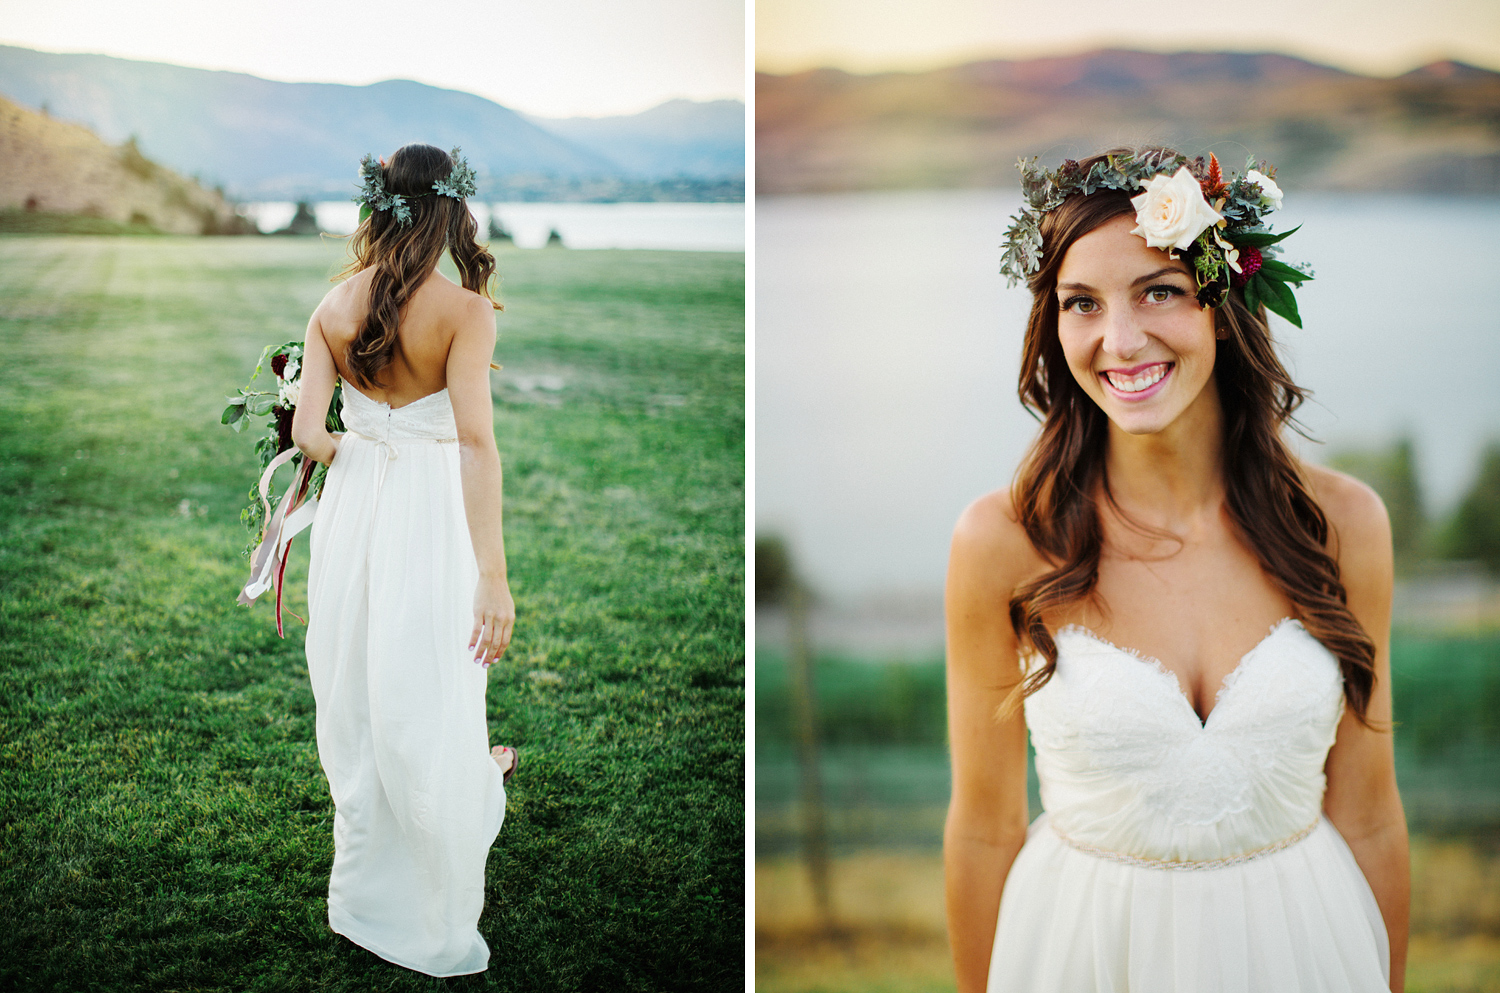 ryan-flynn-seattle-film-photographer-lake-chelan-wedding-0068.JPG